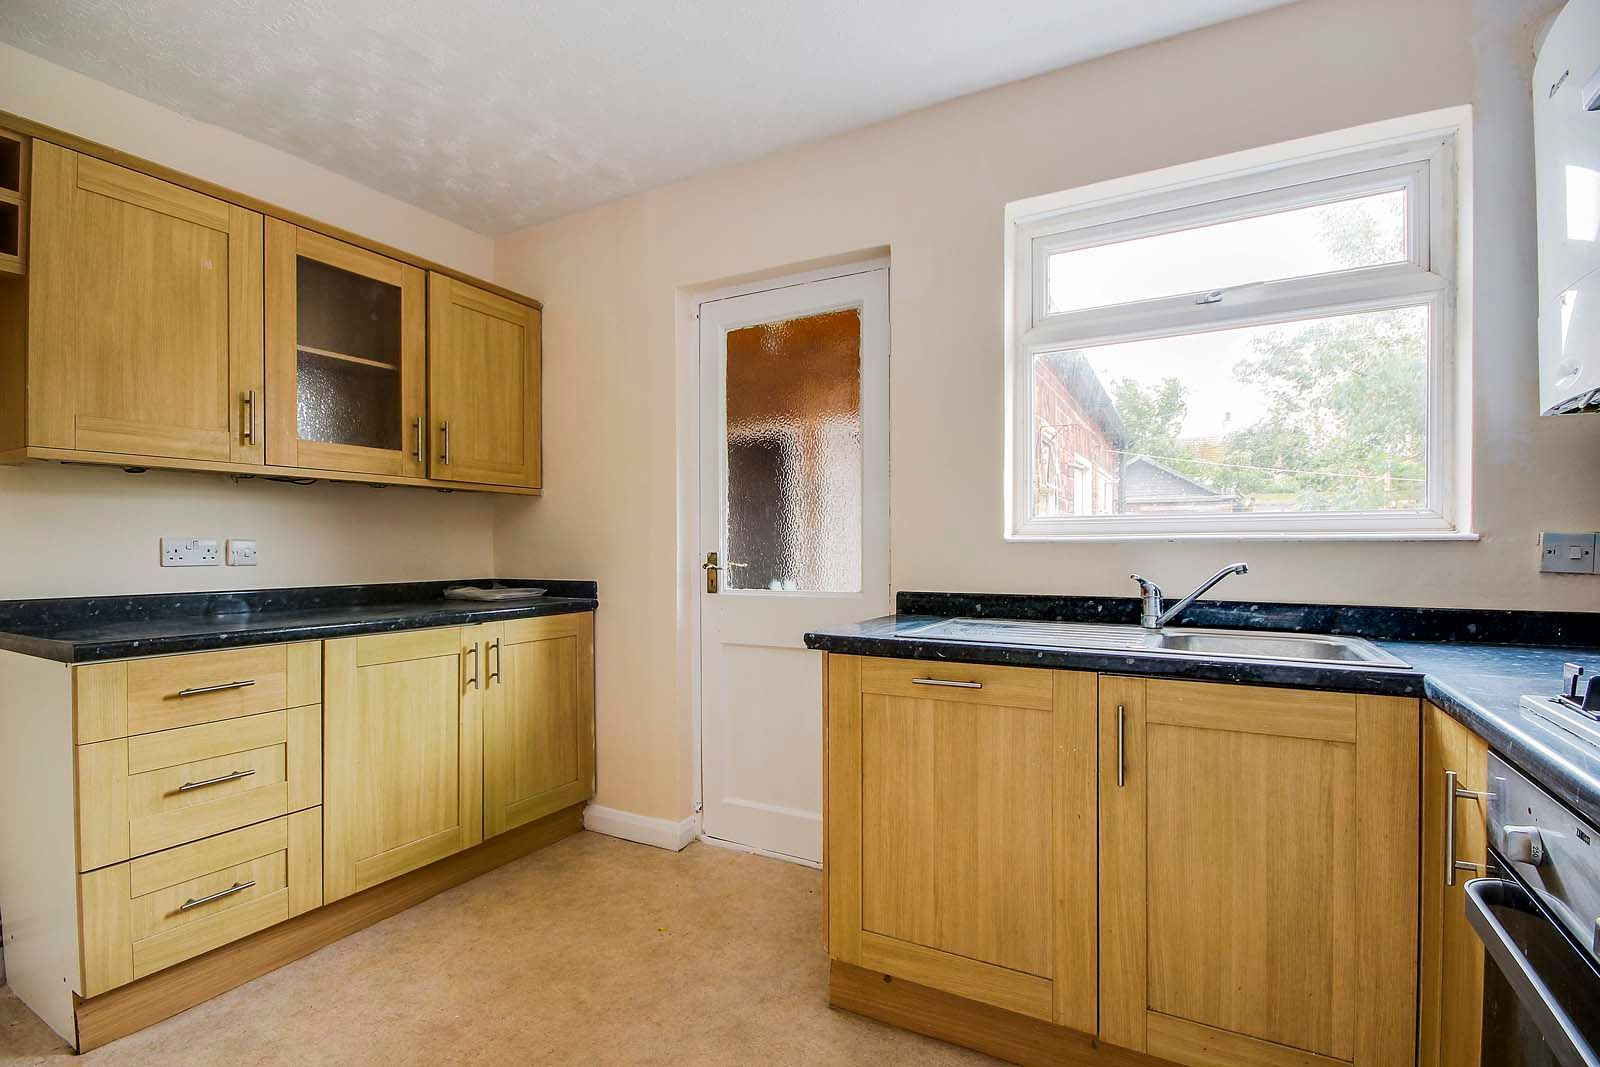 2 bed Apartment to rent in East Preston - Kitchen (Property Image 3)